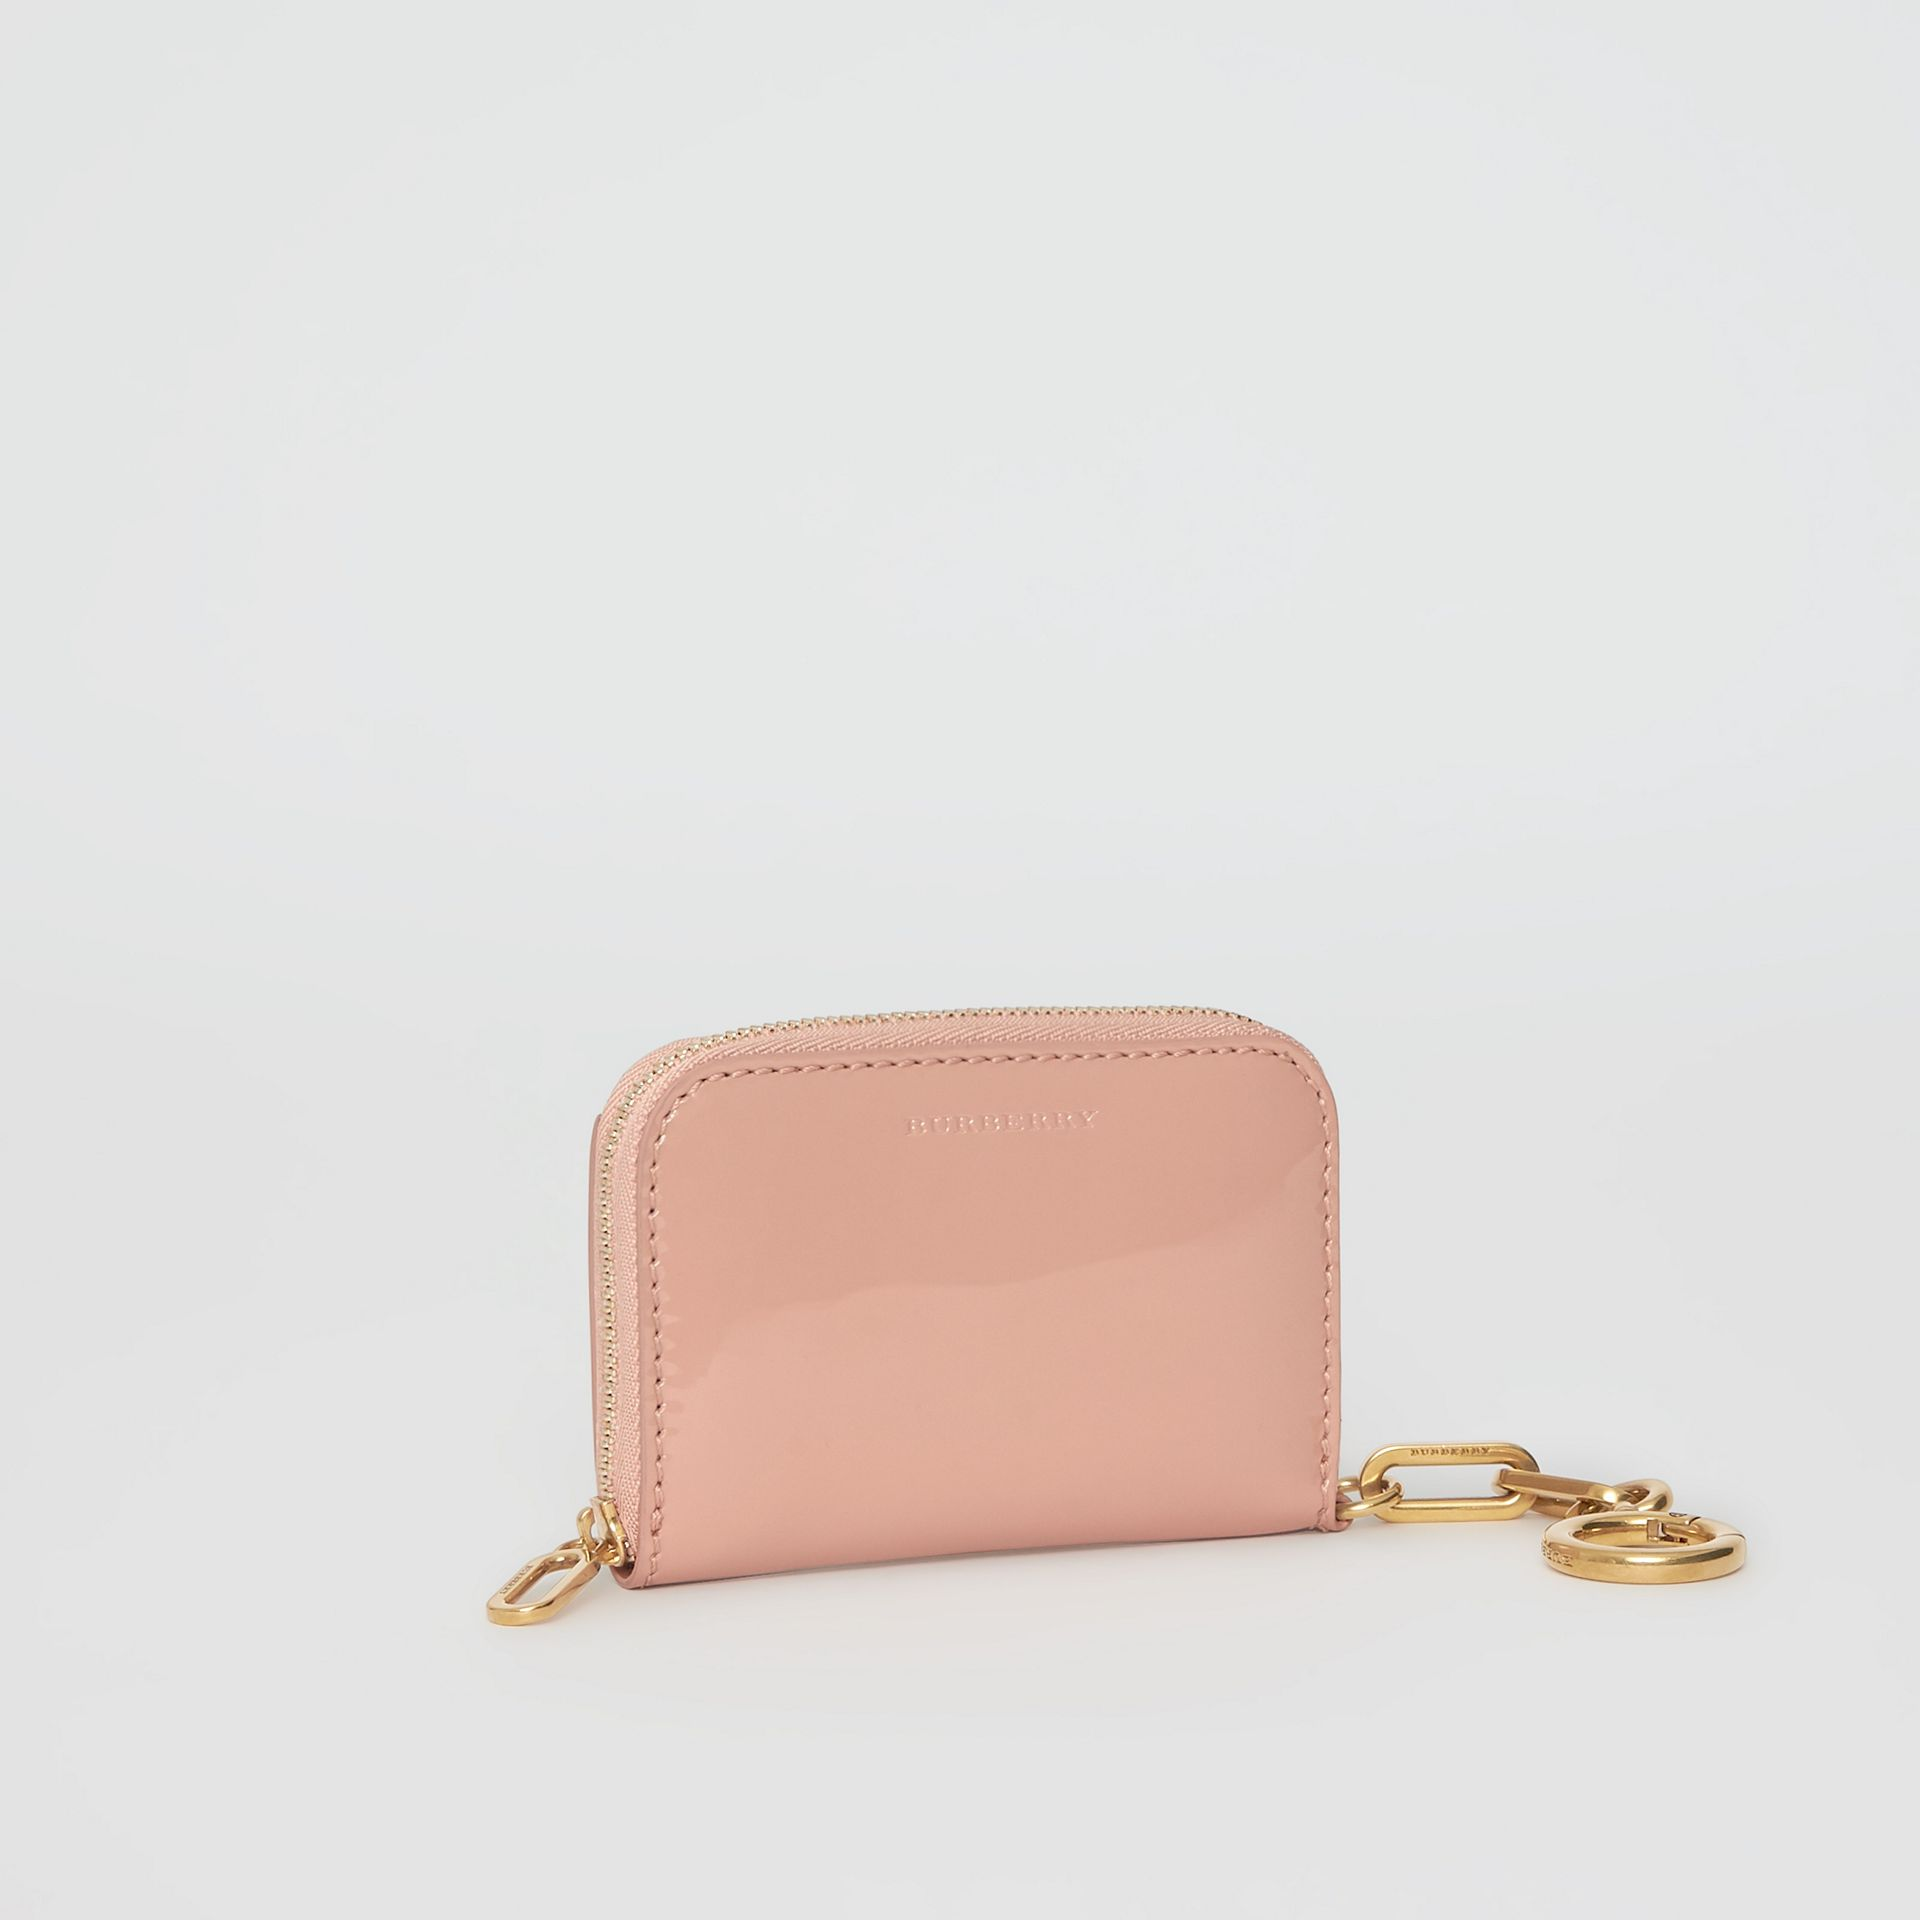 Link Detail Patent Leather Ziparound Wallet in Pale Fawn Pink - Women | Burberry Singapore - gallery image 4